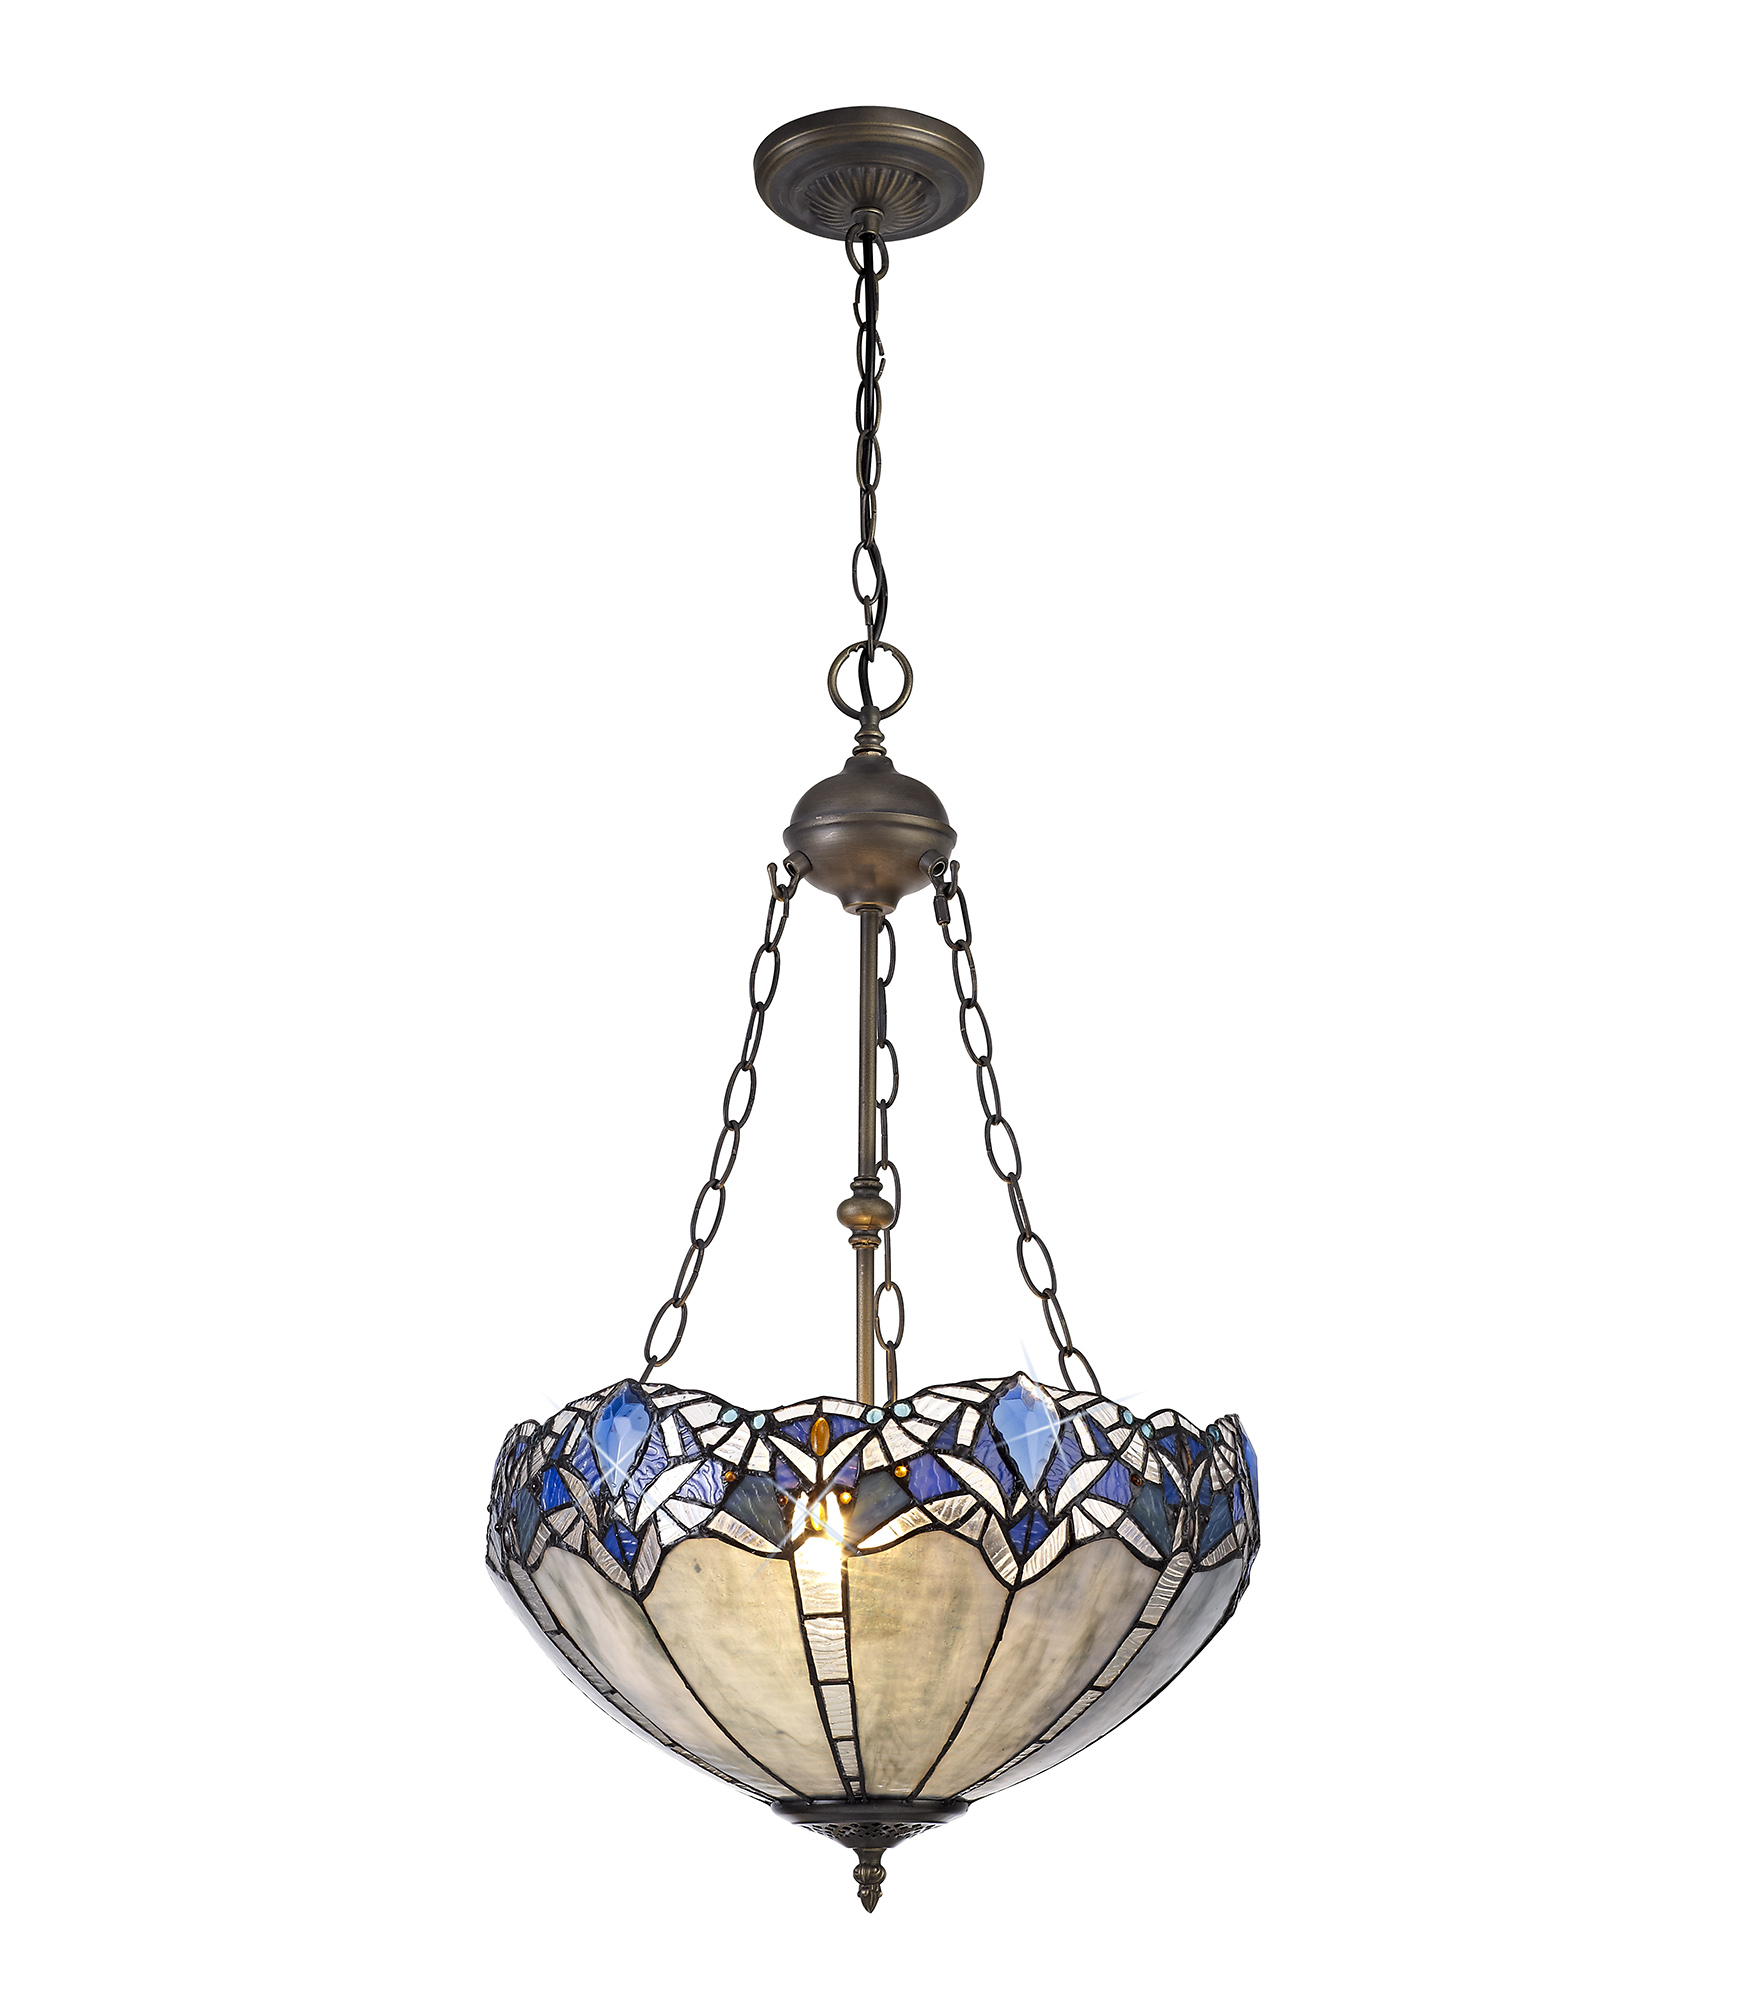 2 Light Uplighter Pendant E27 With 40cm Tiffany Shade, Blue/Clear Crystal/Aged Antique Brass